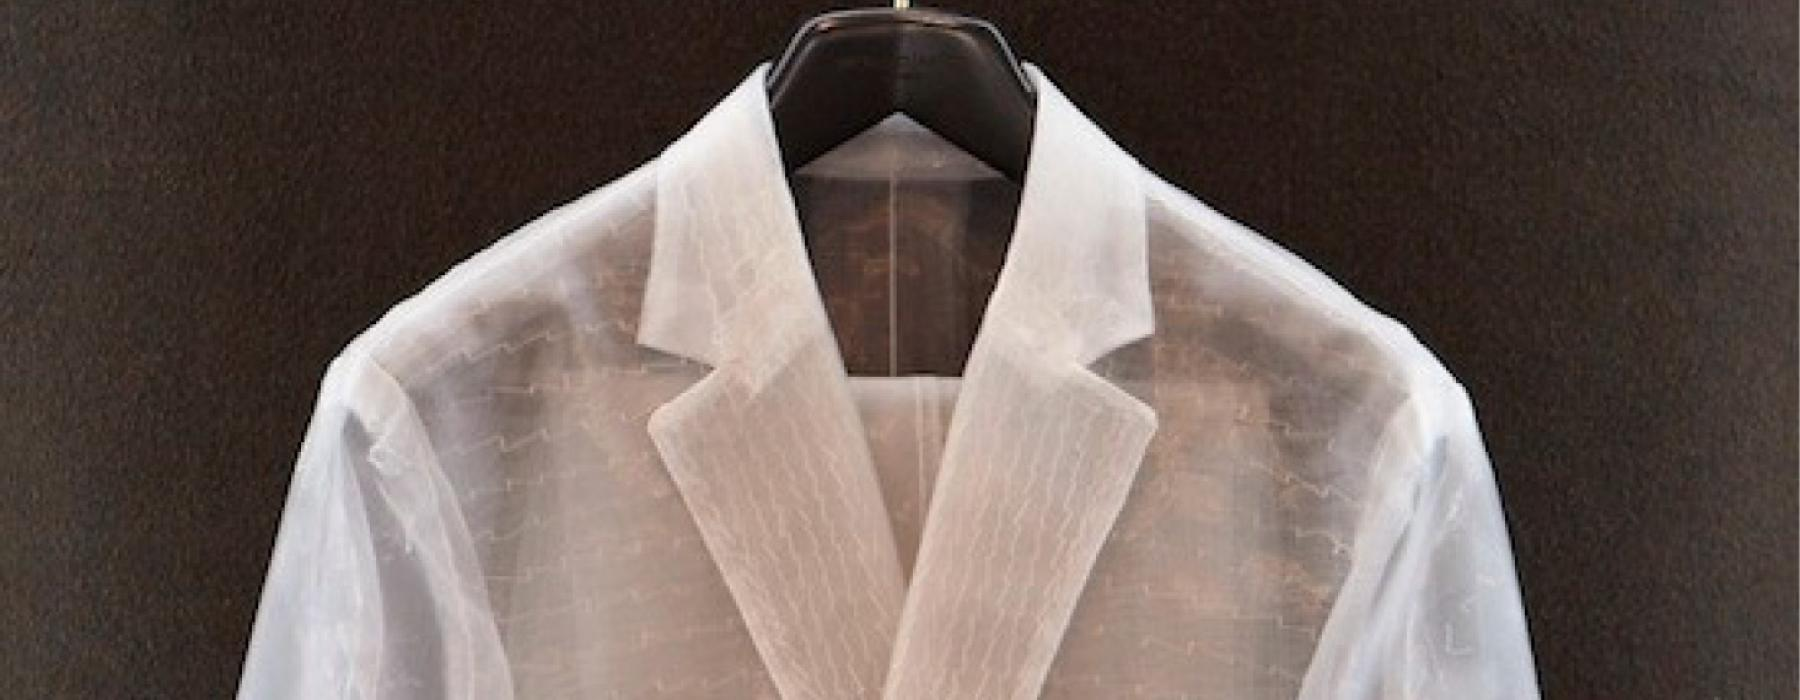 Suiting Nations, The Myth of the Englishman's Suit - Research Center for Material Culture